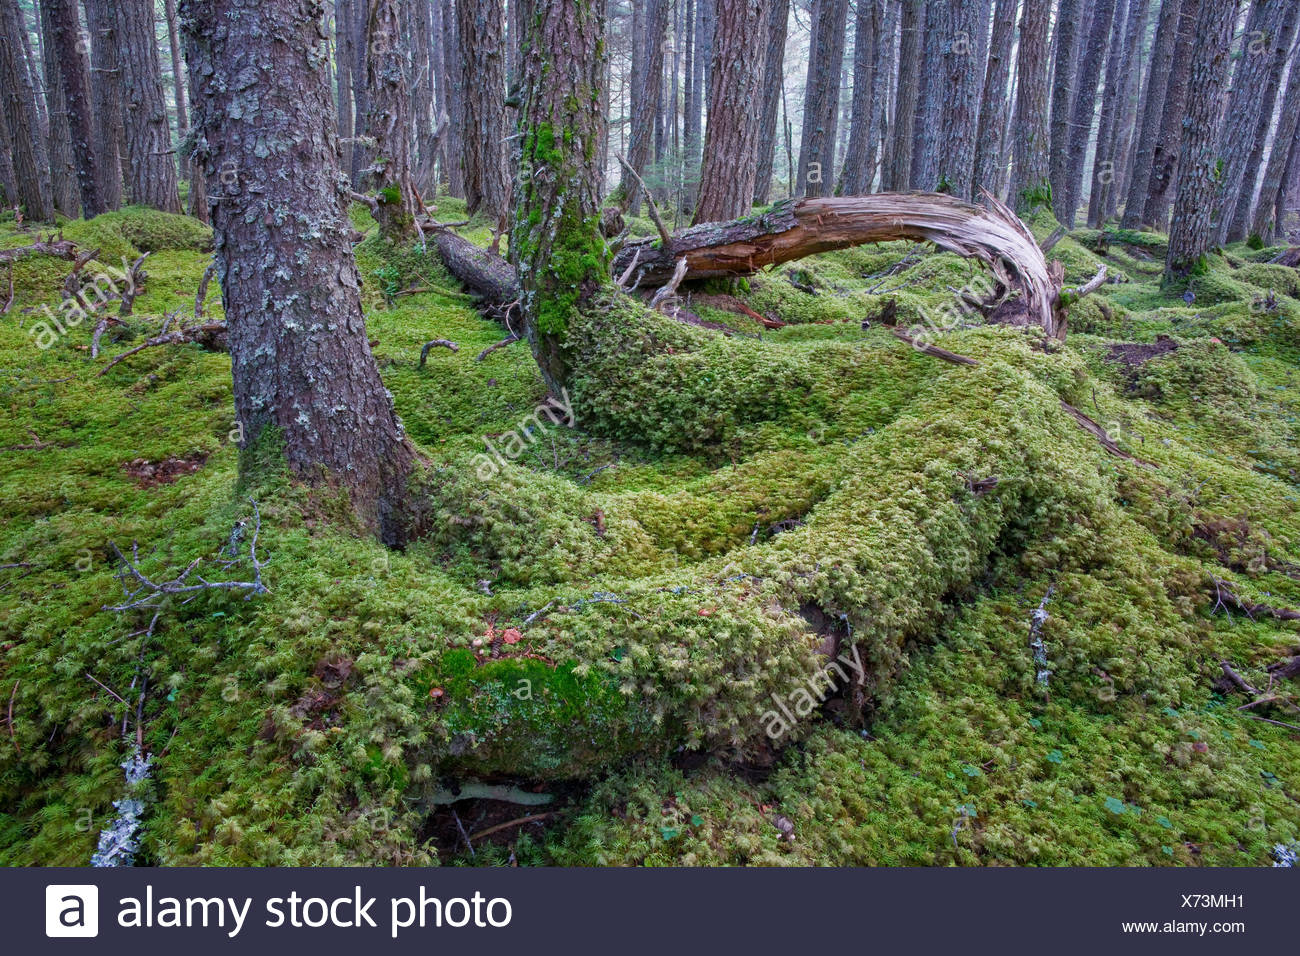 Lush understory of a rain forest, Bird Creek Valley, Chugach State Park, Southcentral Alaska, Summer - Stock Image